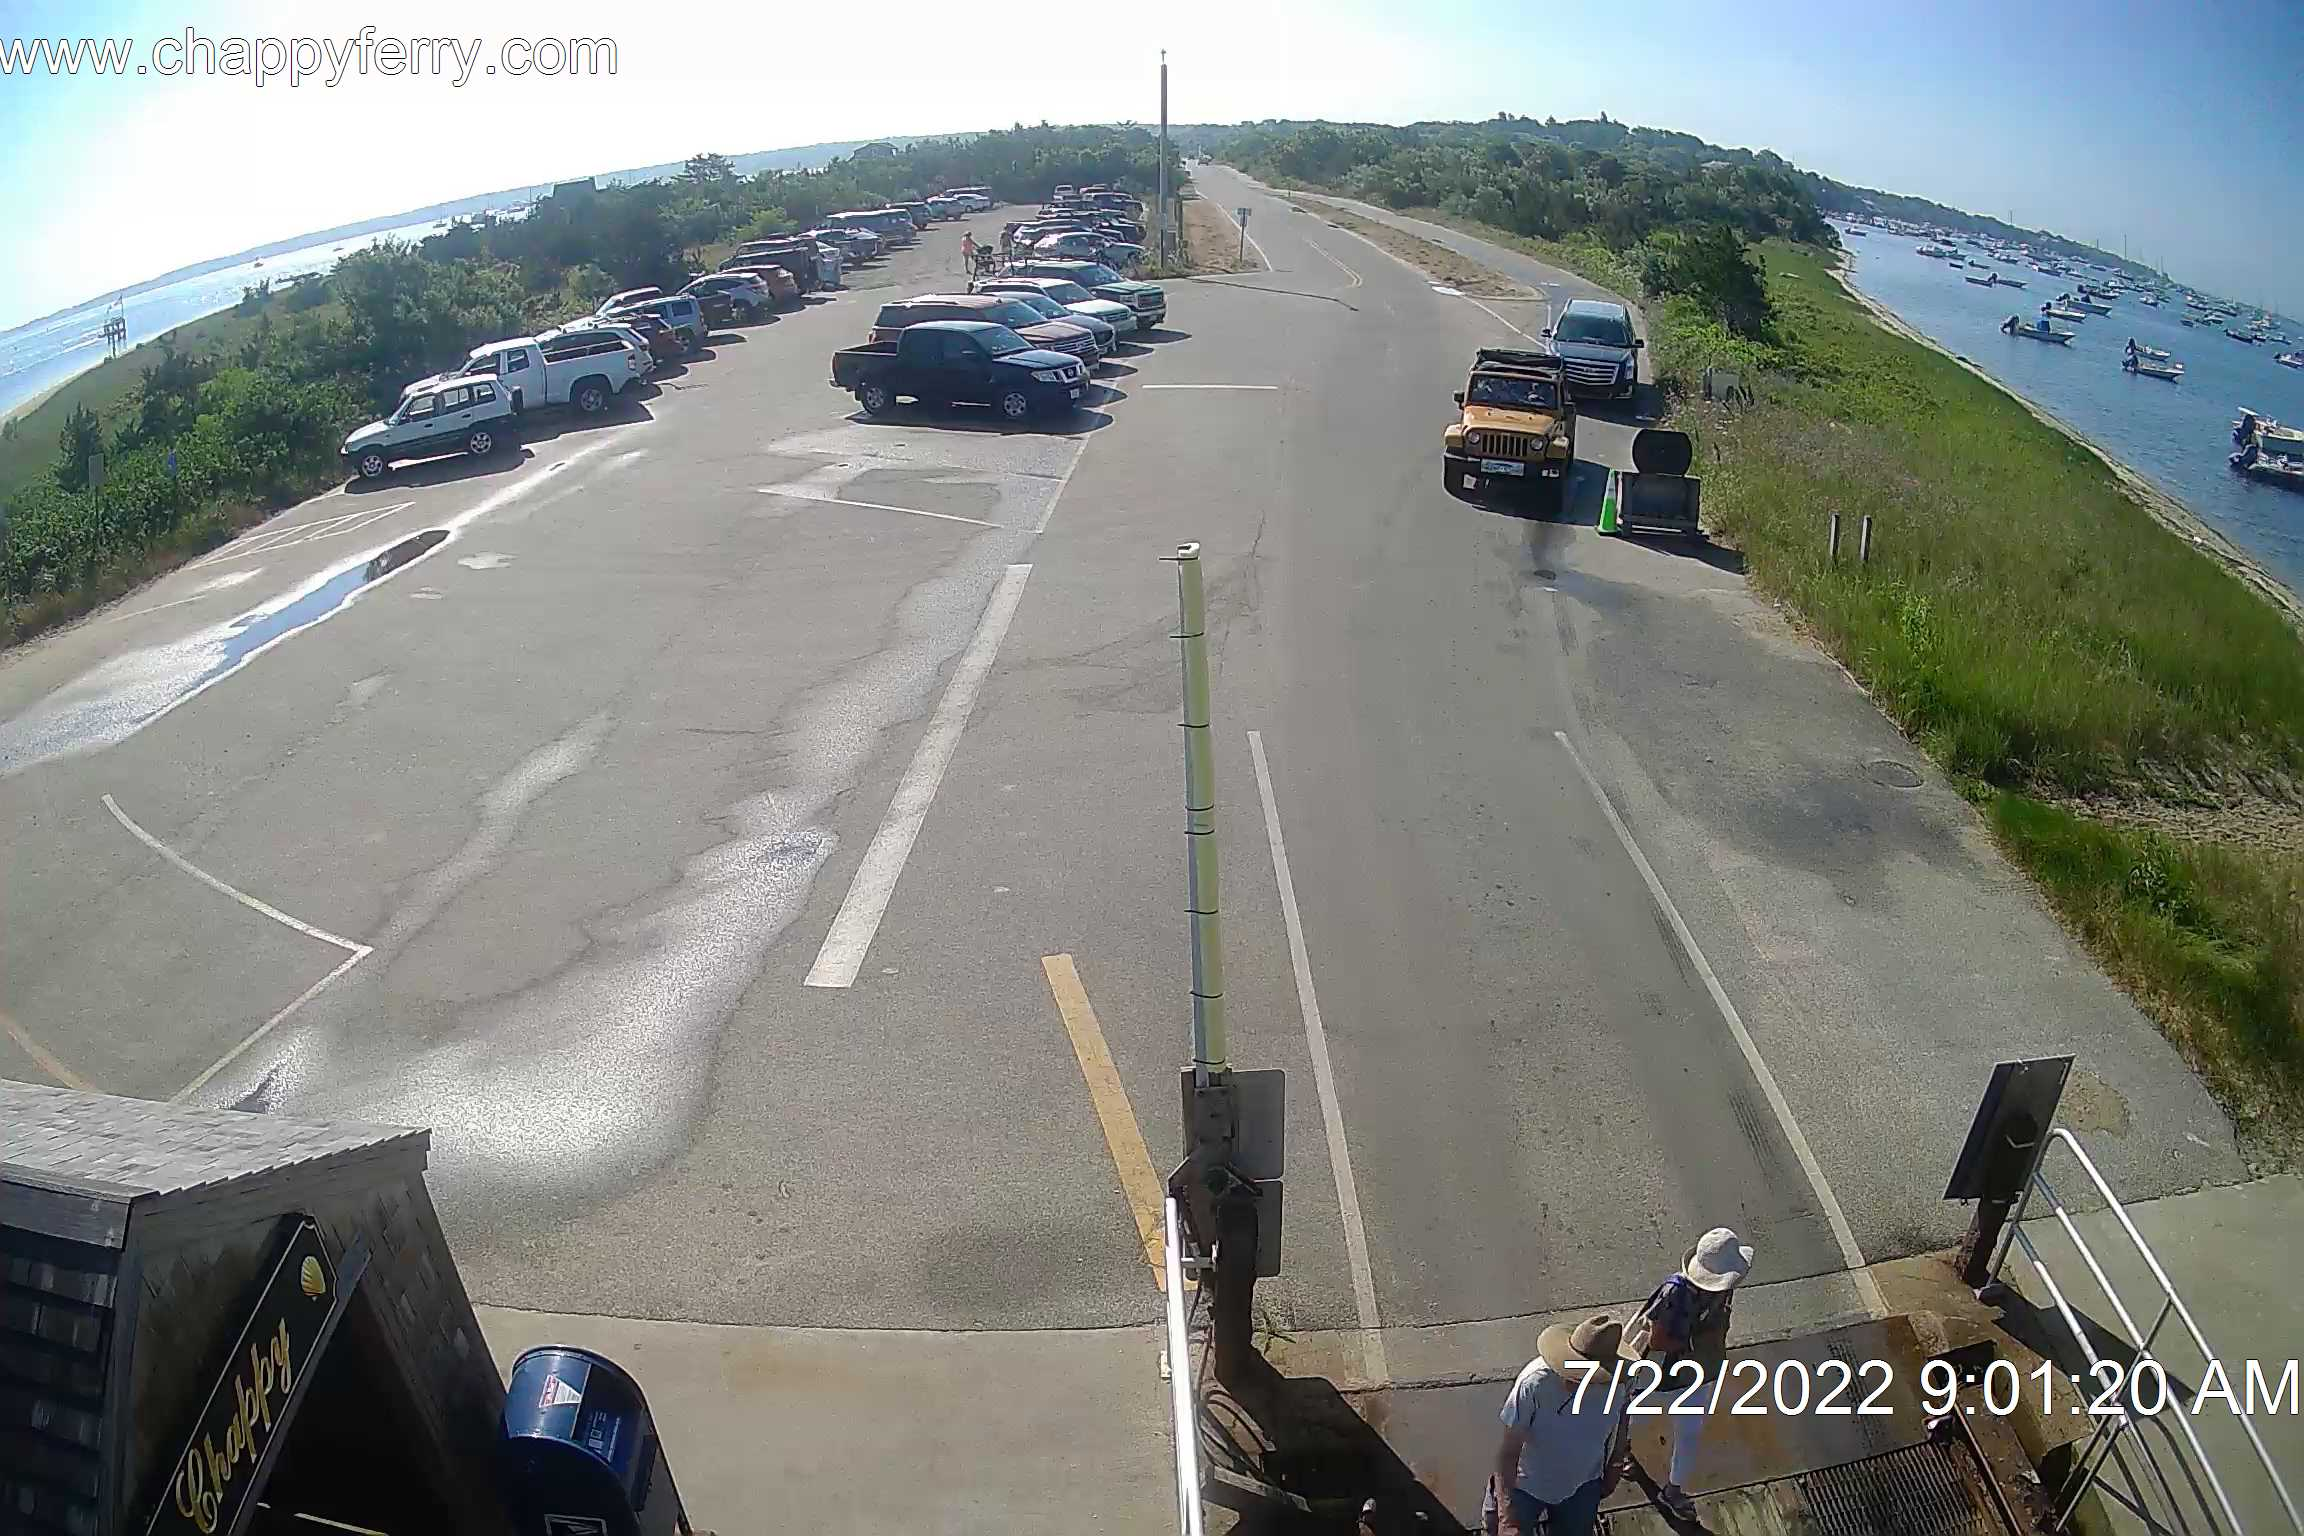 Chappy Ferry Webcam – Martha's Vineyard